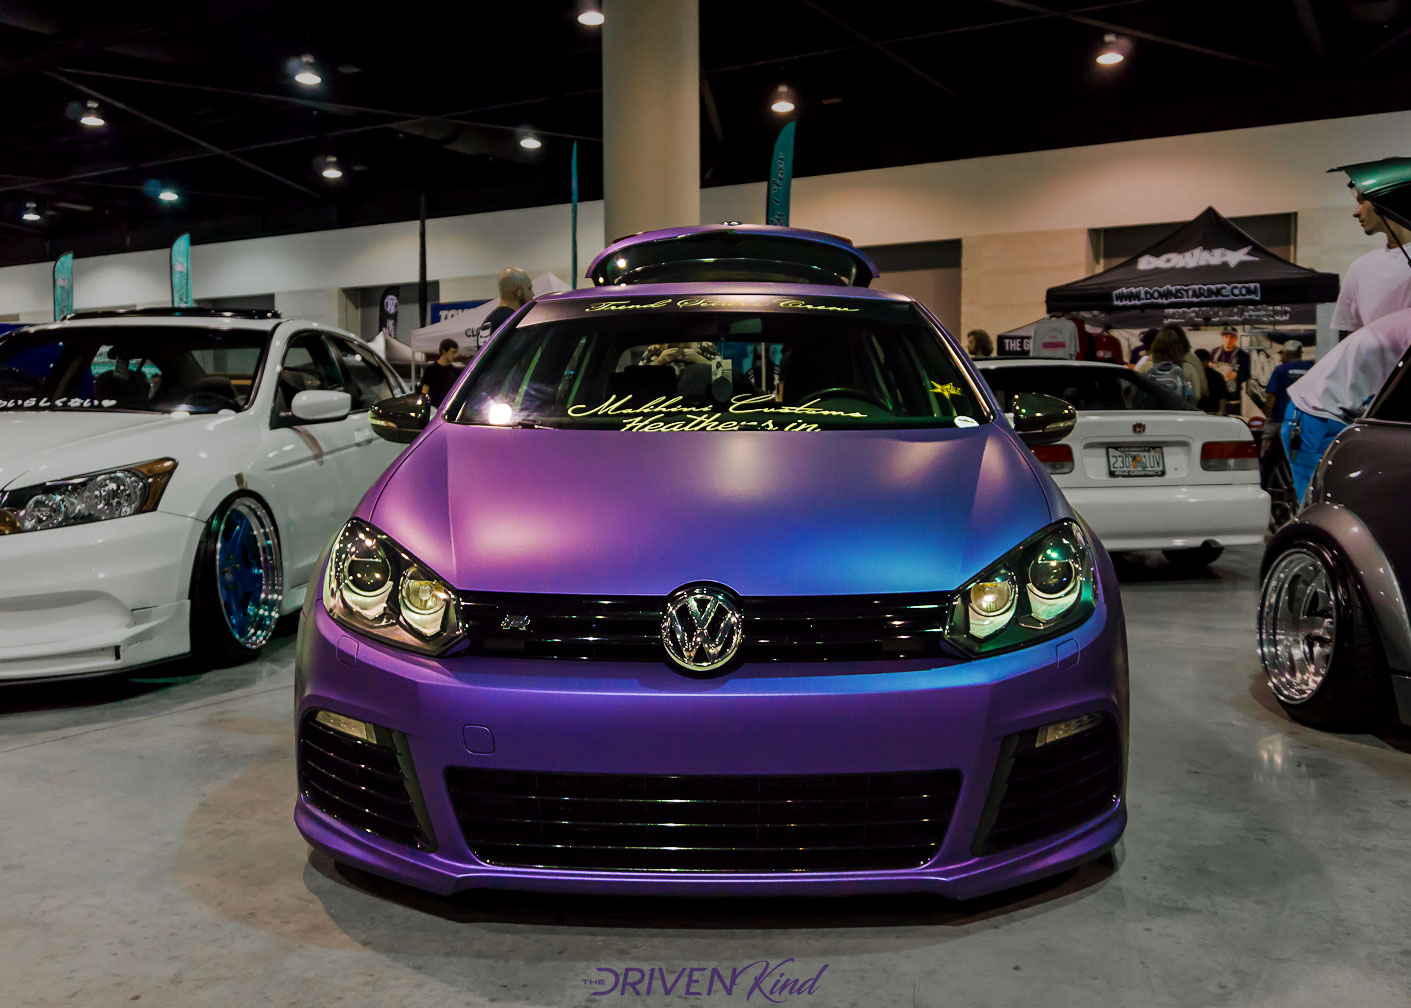 VW GTI Tuner Evolution Car Show Coverage Daytona Beach by The Driven Kind